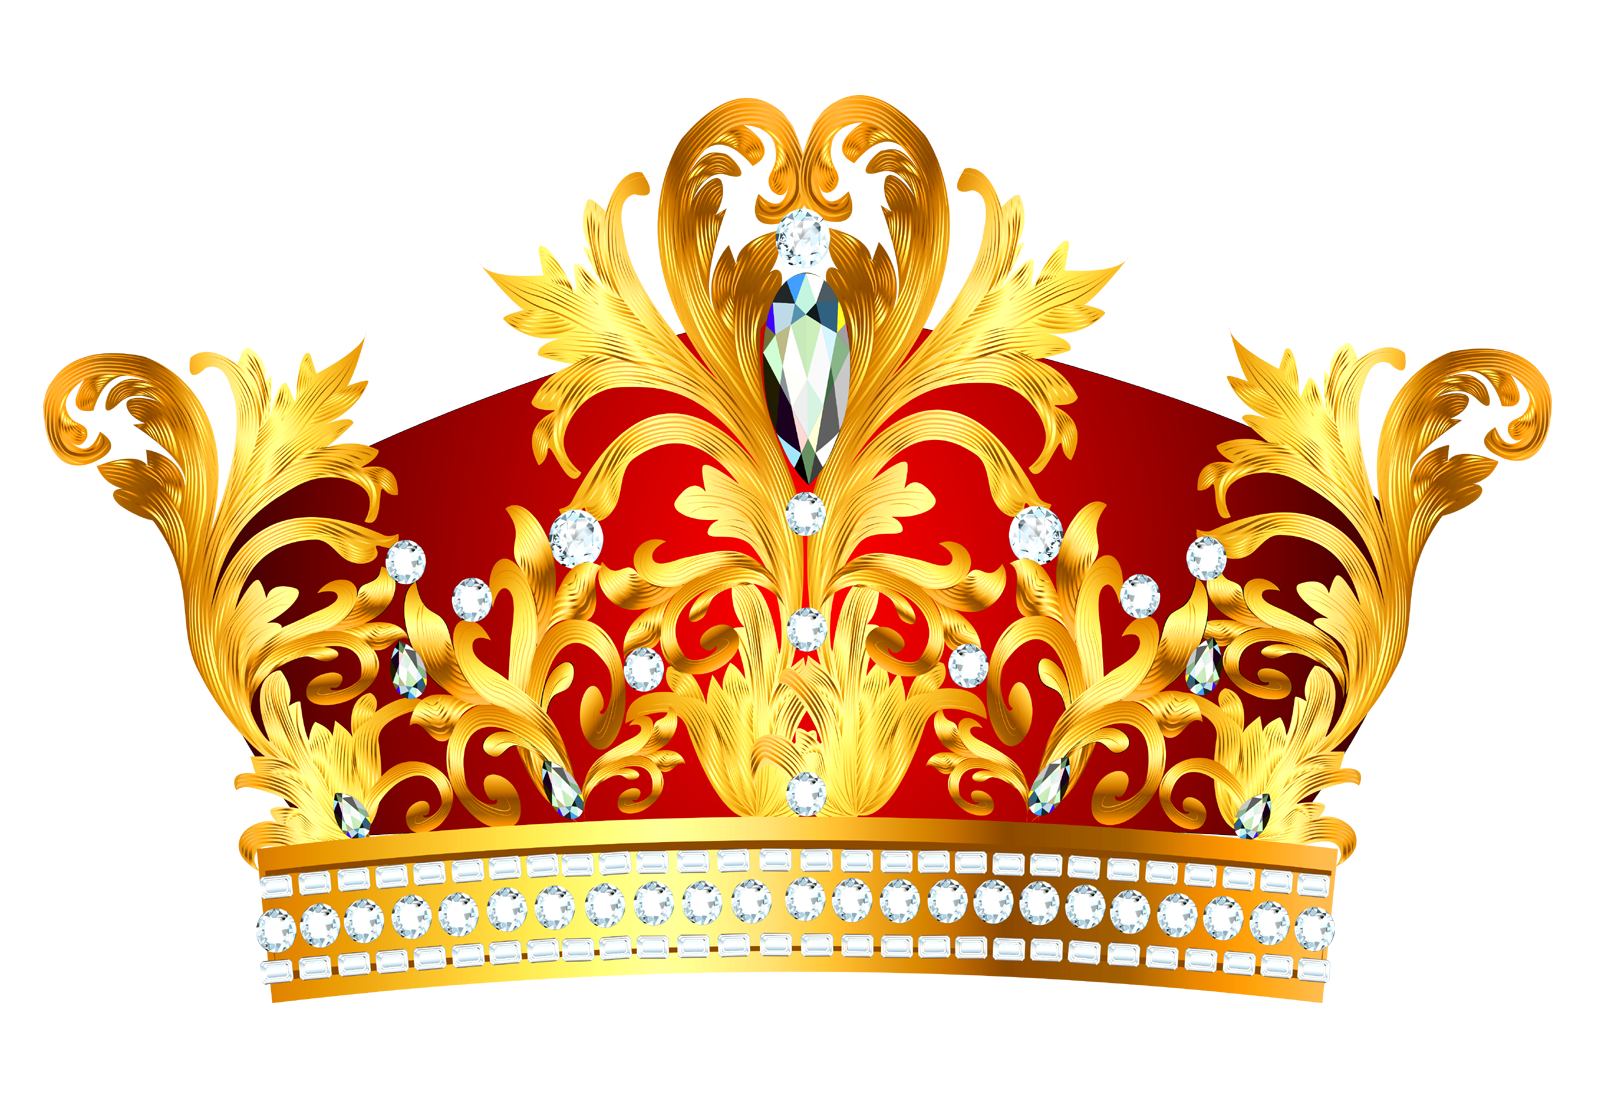 transparent crowns prince